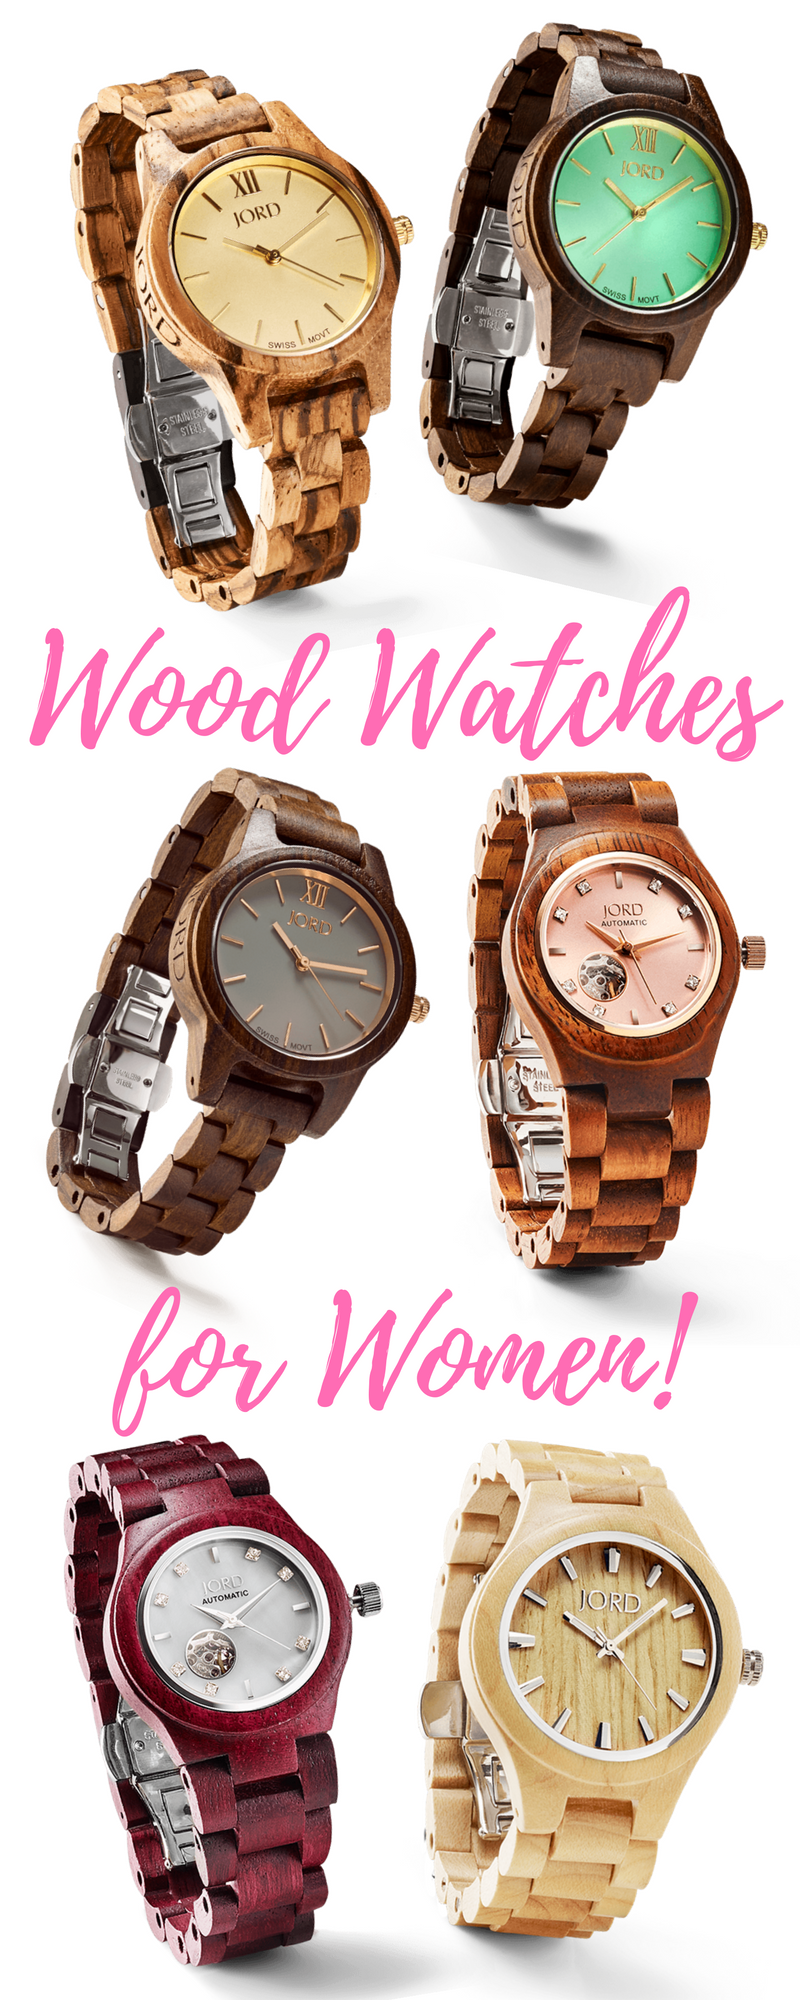 Wood Watches for Women